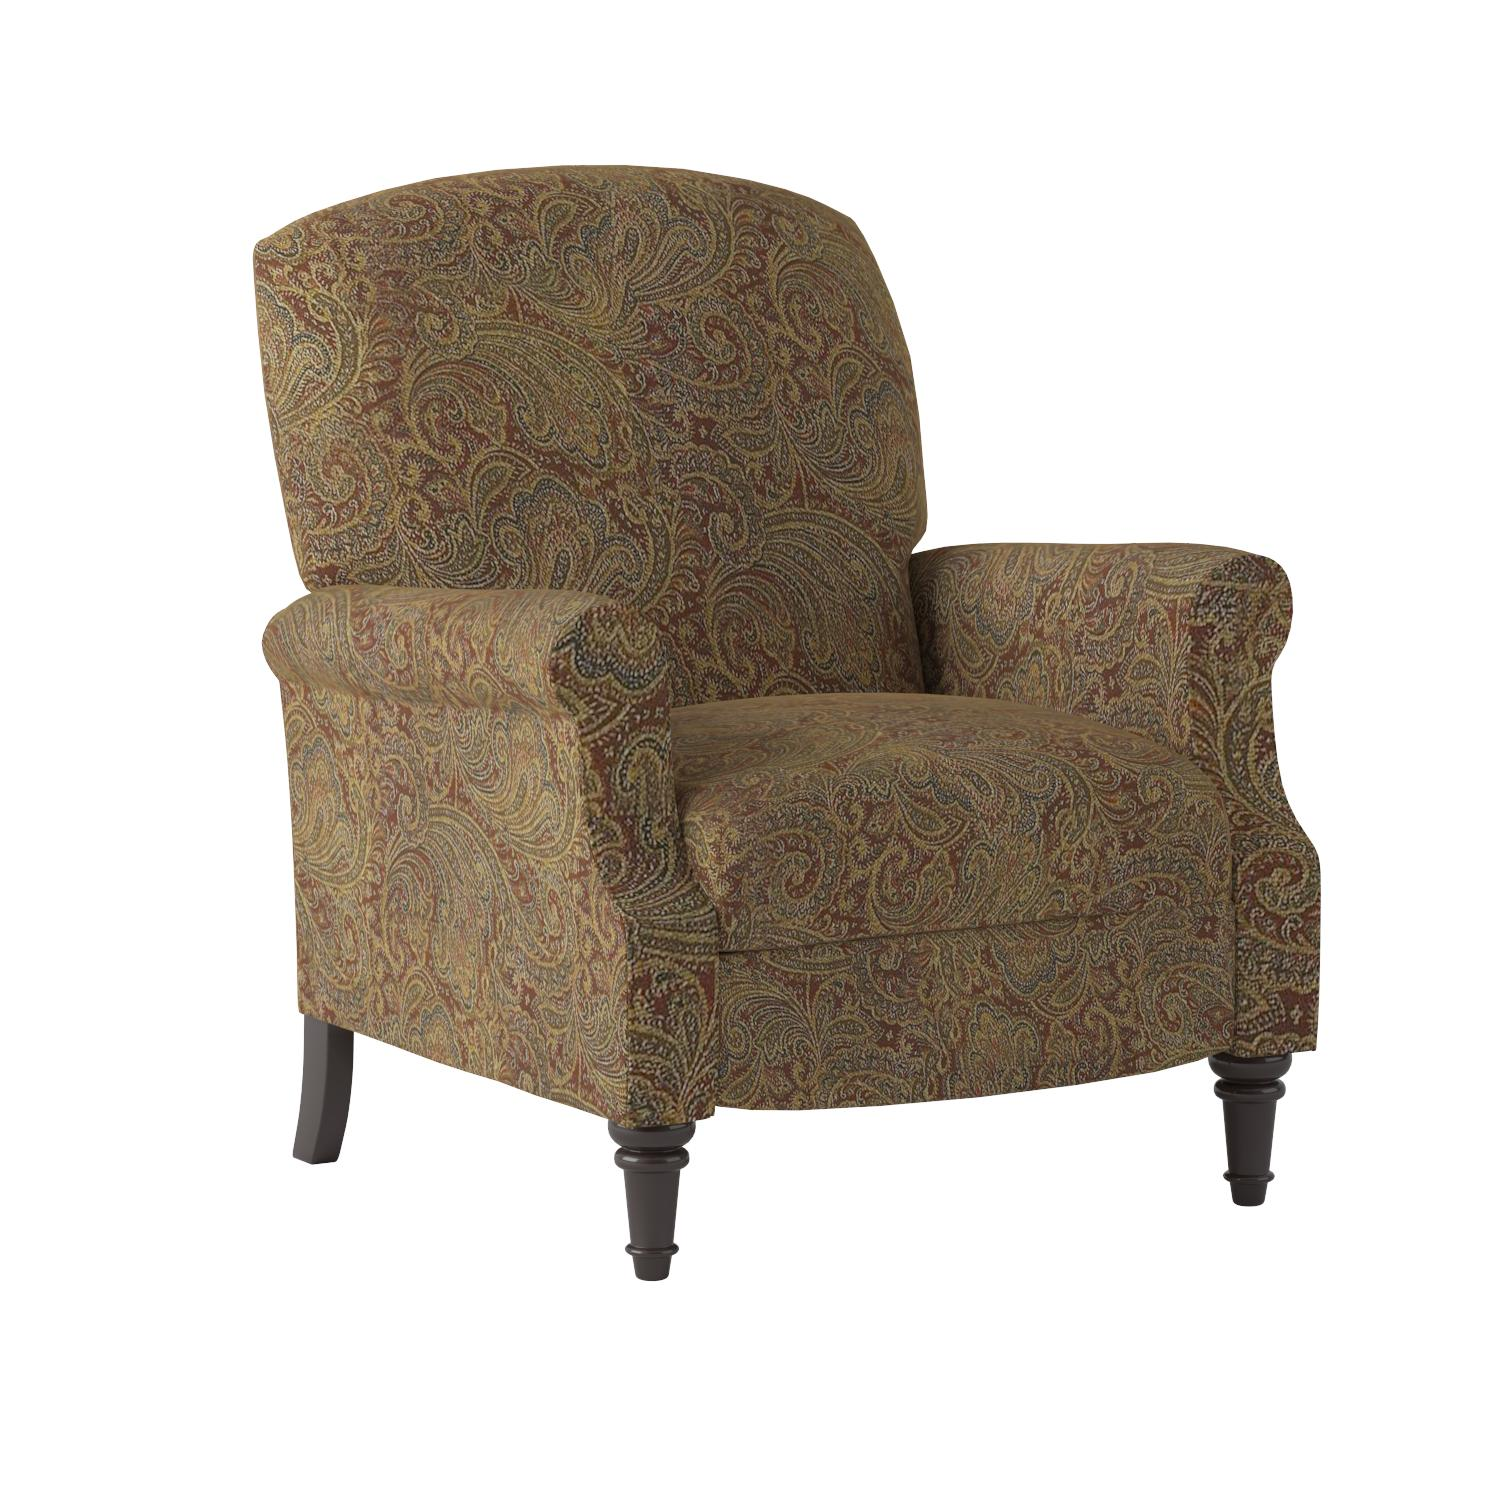 Furniture amp accessories 26 quot camo padded folding anti gravity chair - Furniture Amp Accessories 26 Quot Camo Padded Folding Anti Gravity Chair